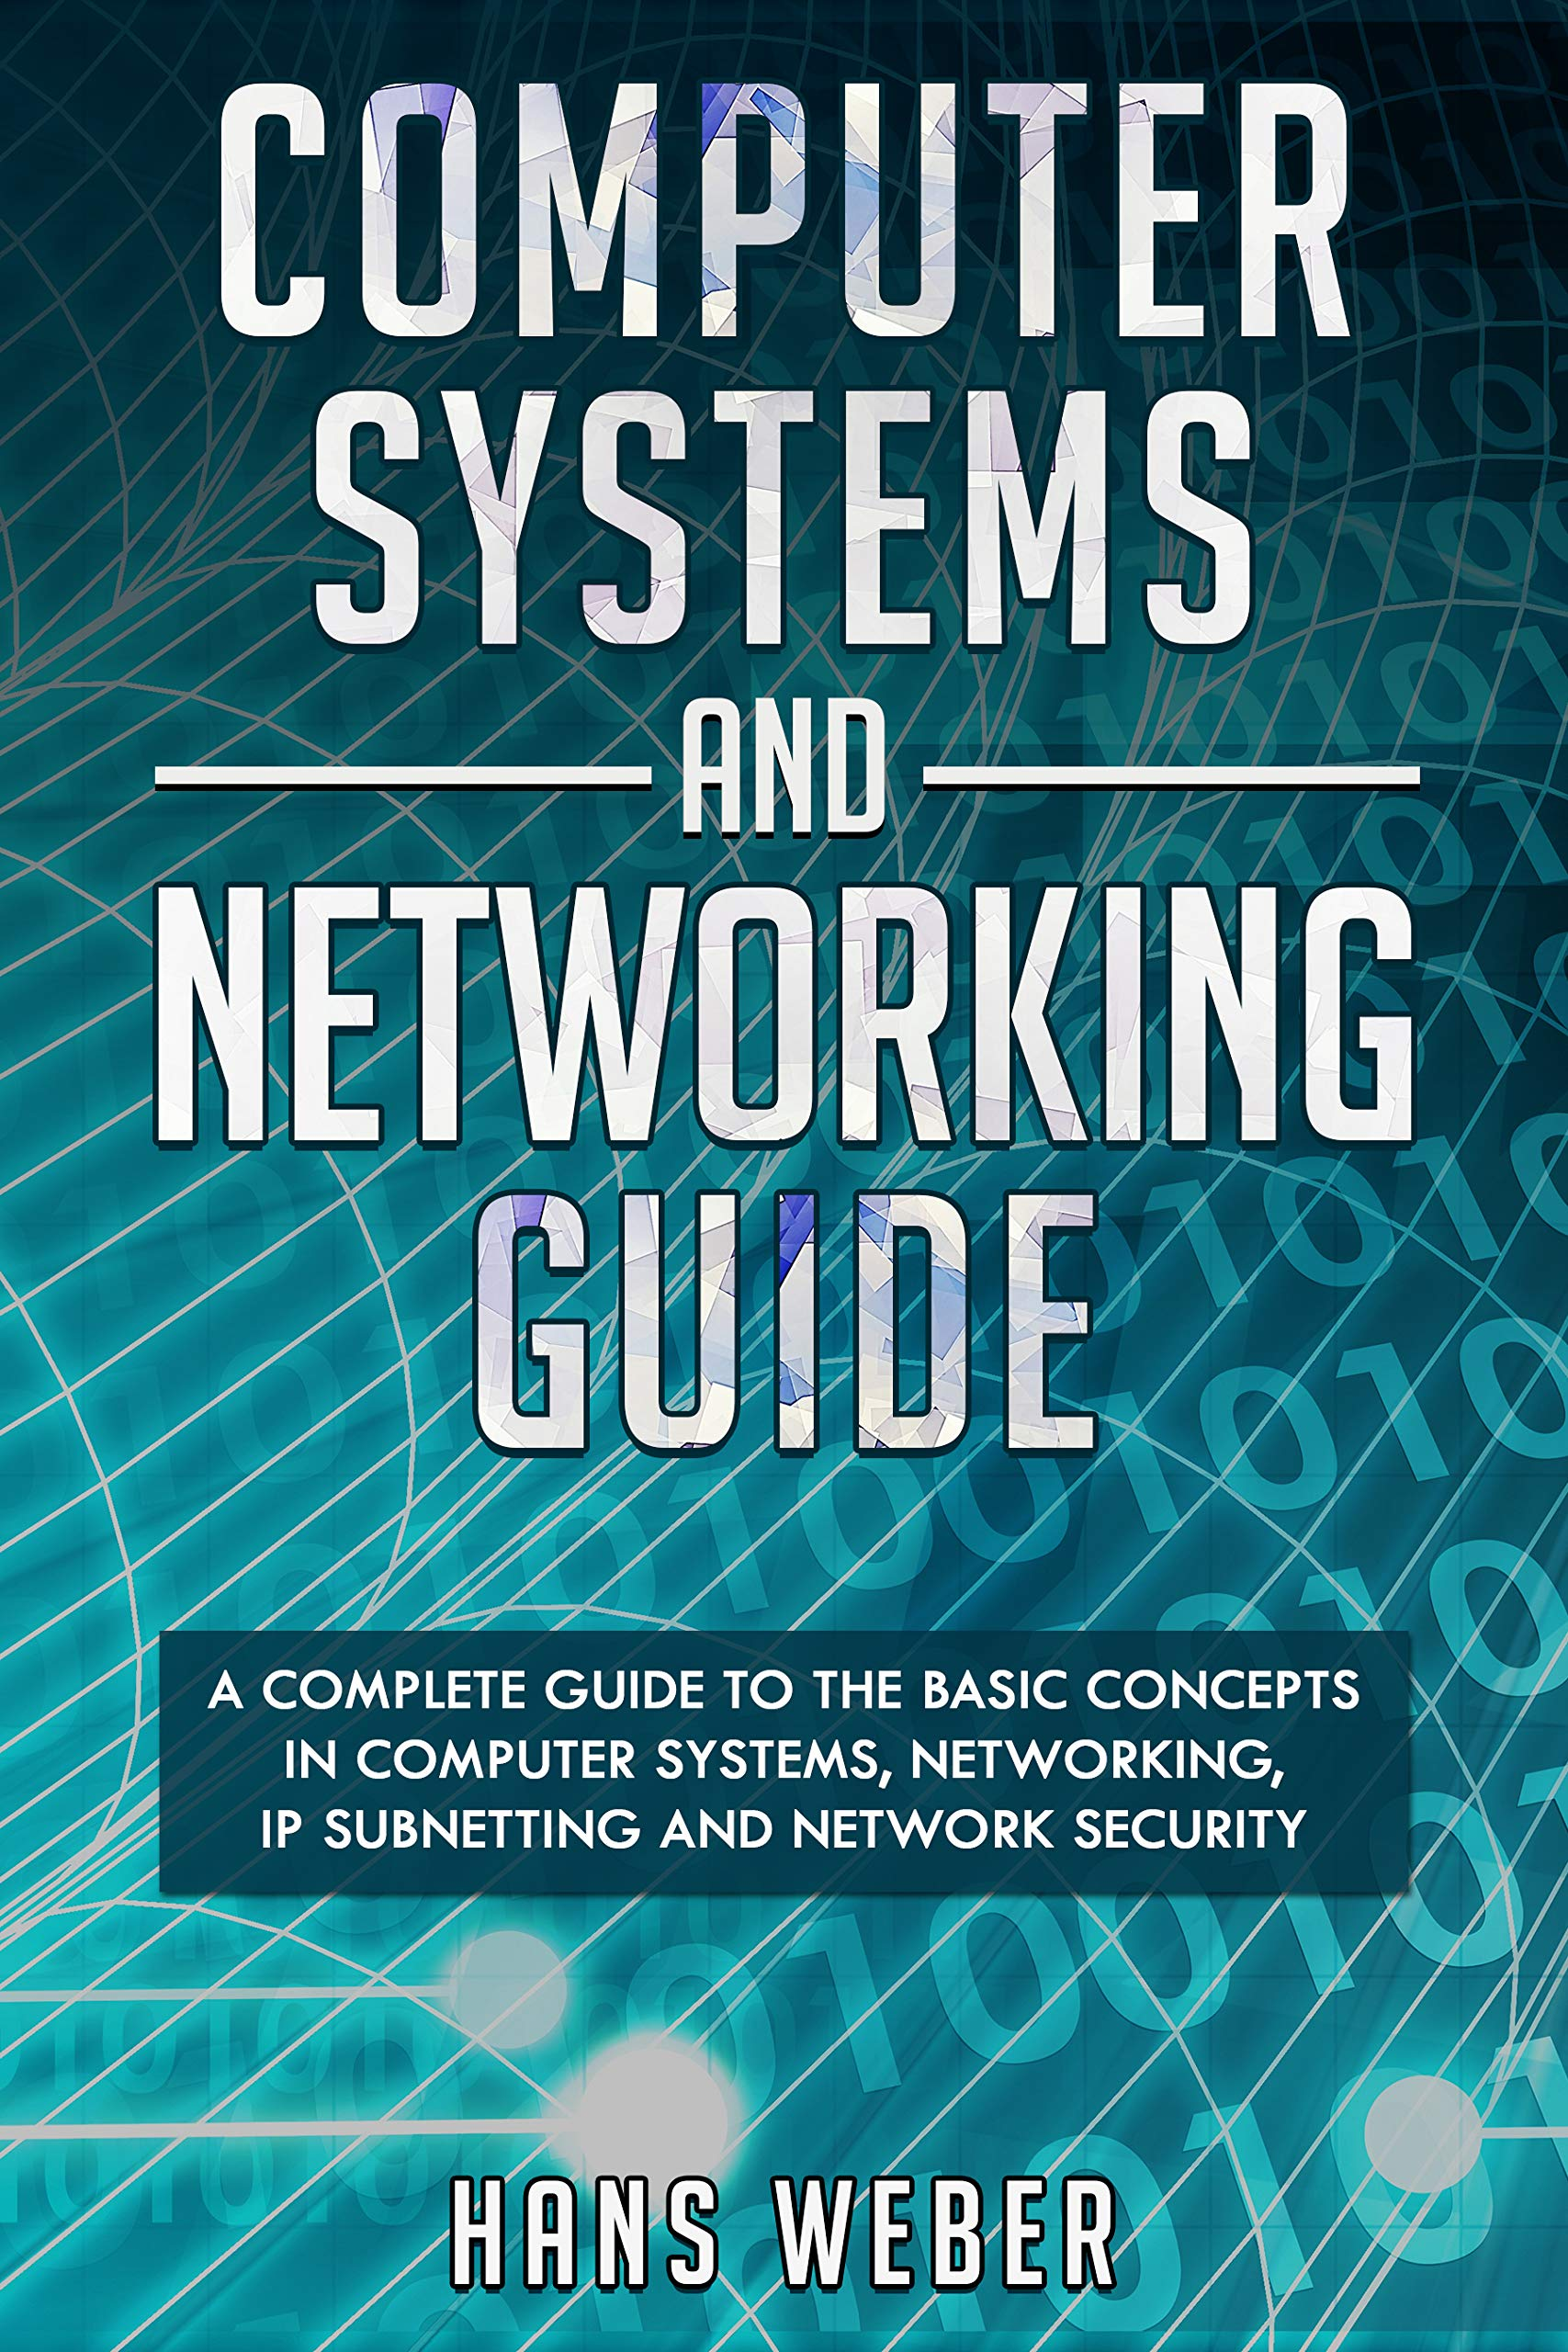 Computer Systems and Networking Guide: A Complete Guide to the Basic Concepts in Computer Systems Networking IP Subnetting and Network Security (English Edition)